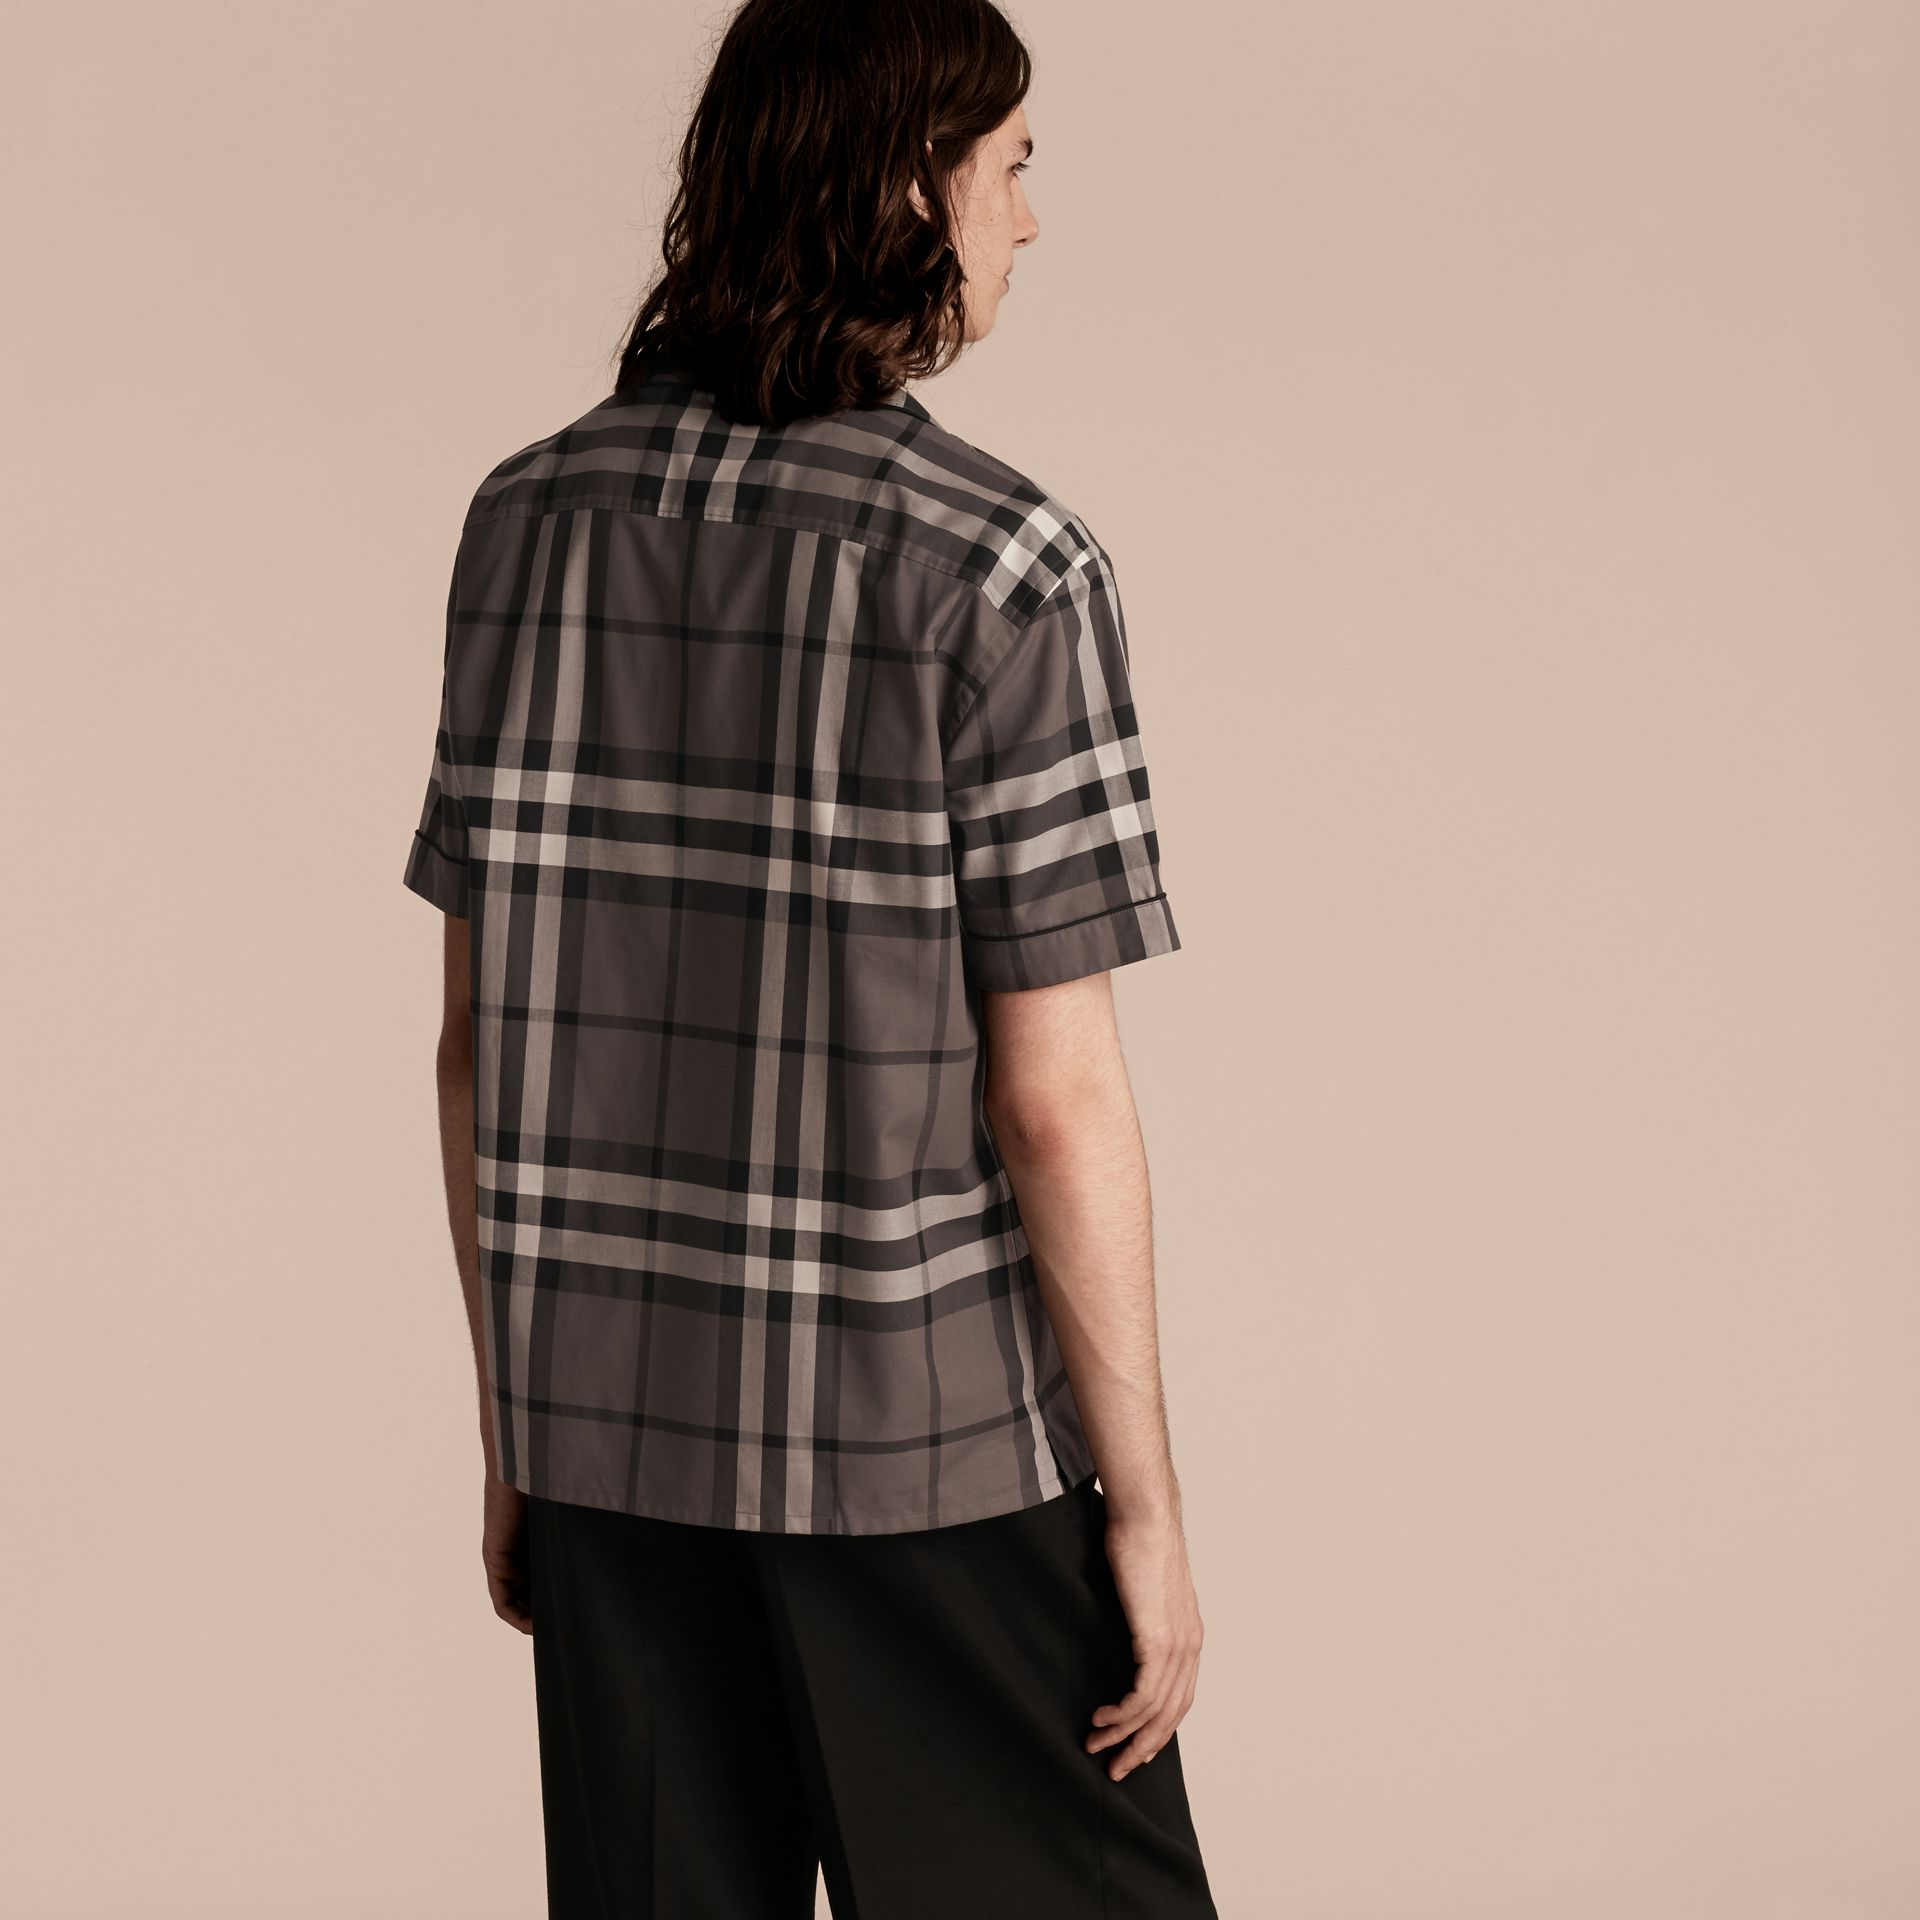 Charcoal Short-sleeved Check Cotton Pyjama-style Shirt Charcoal - gallery image 3